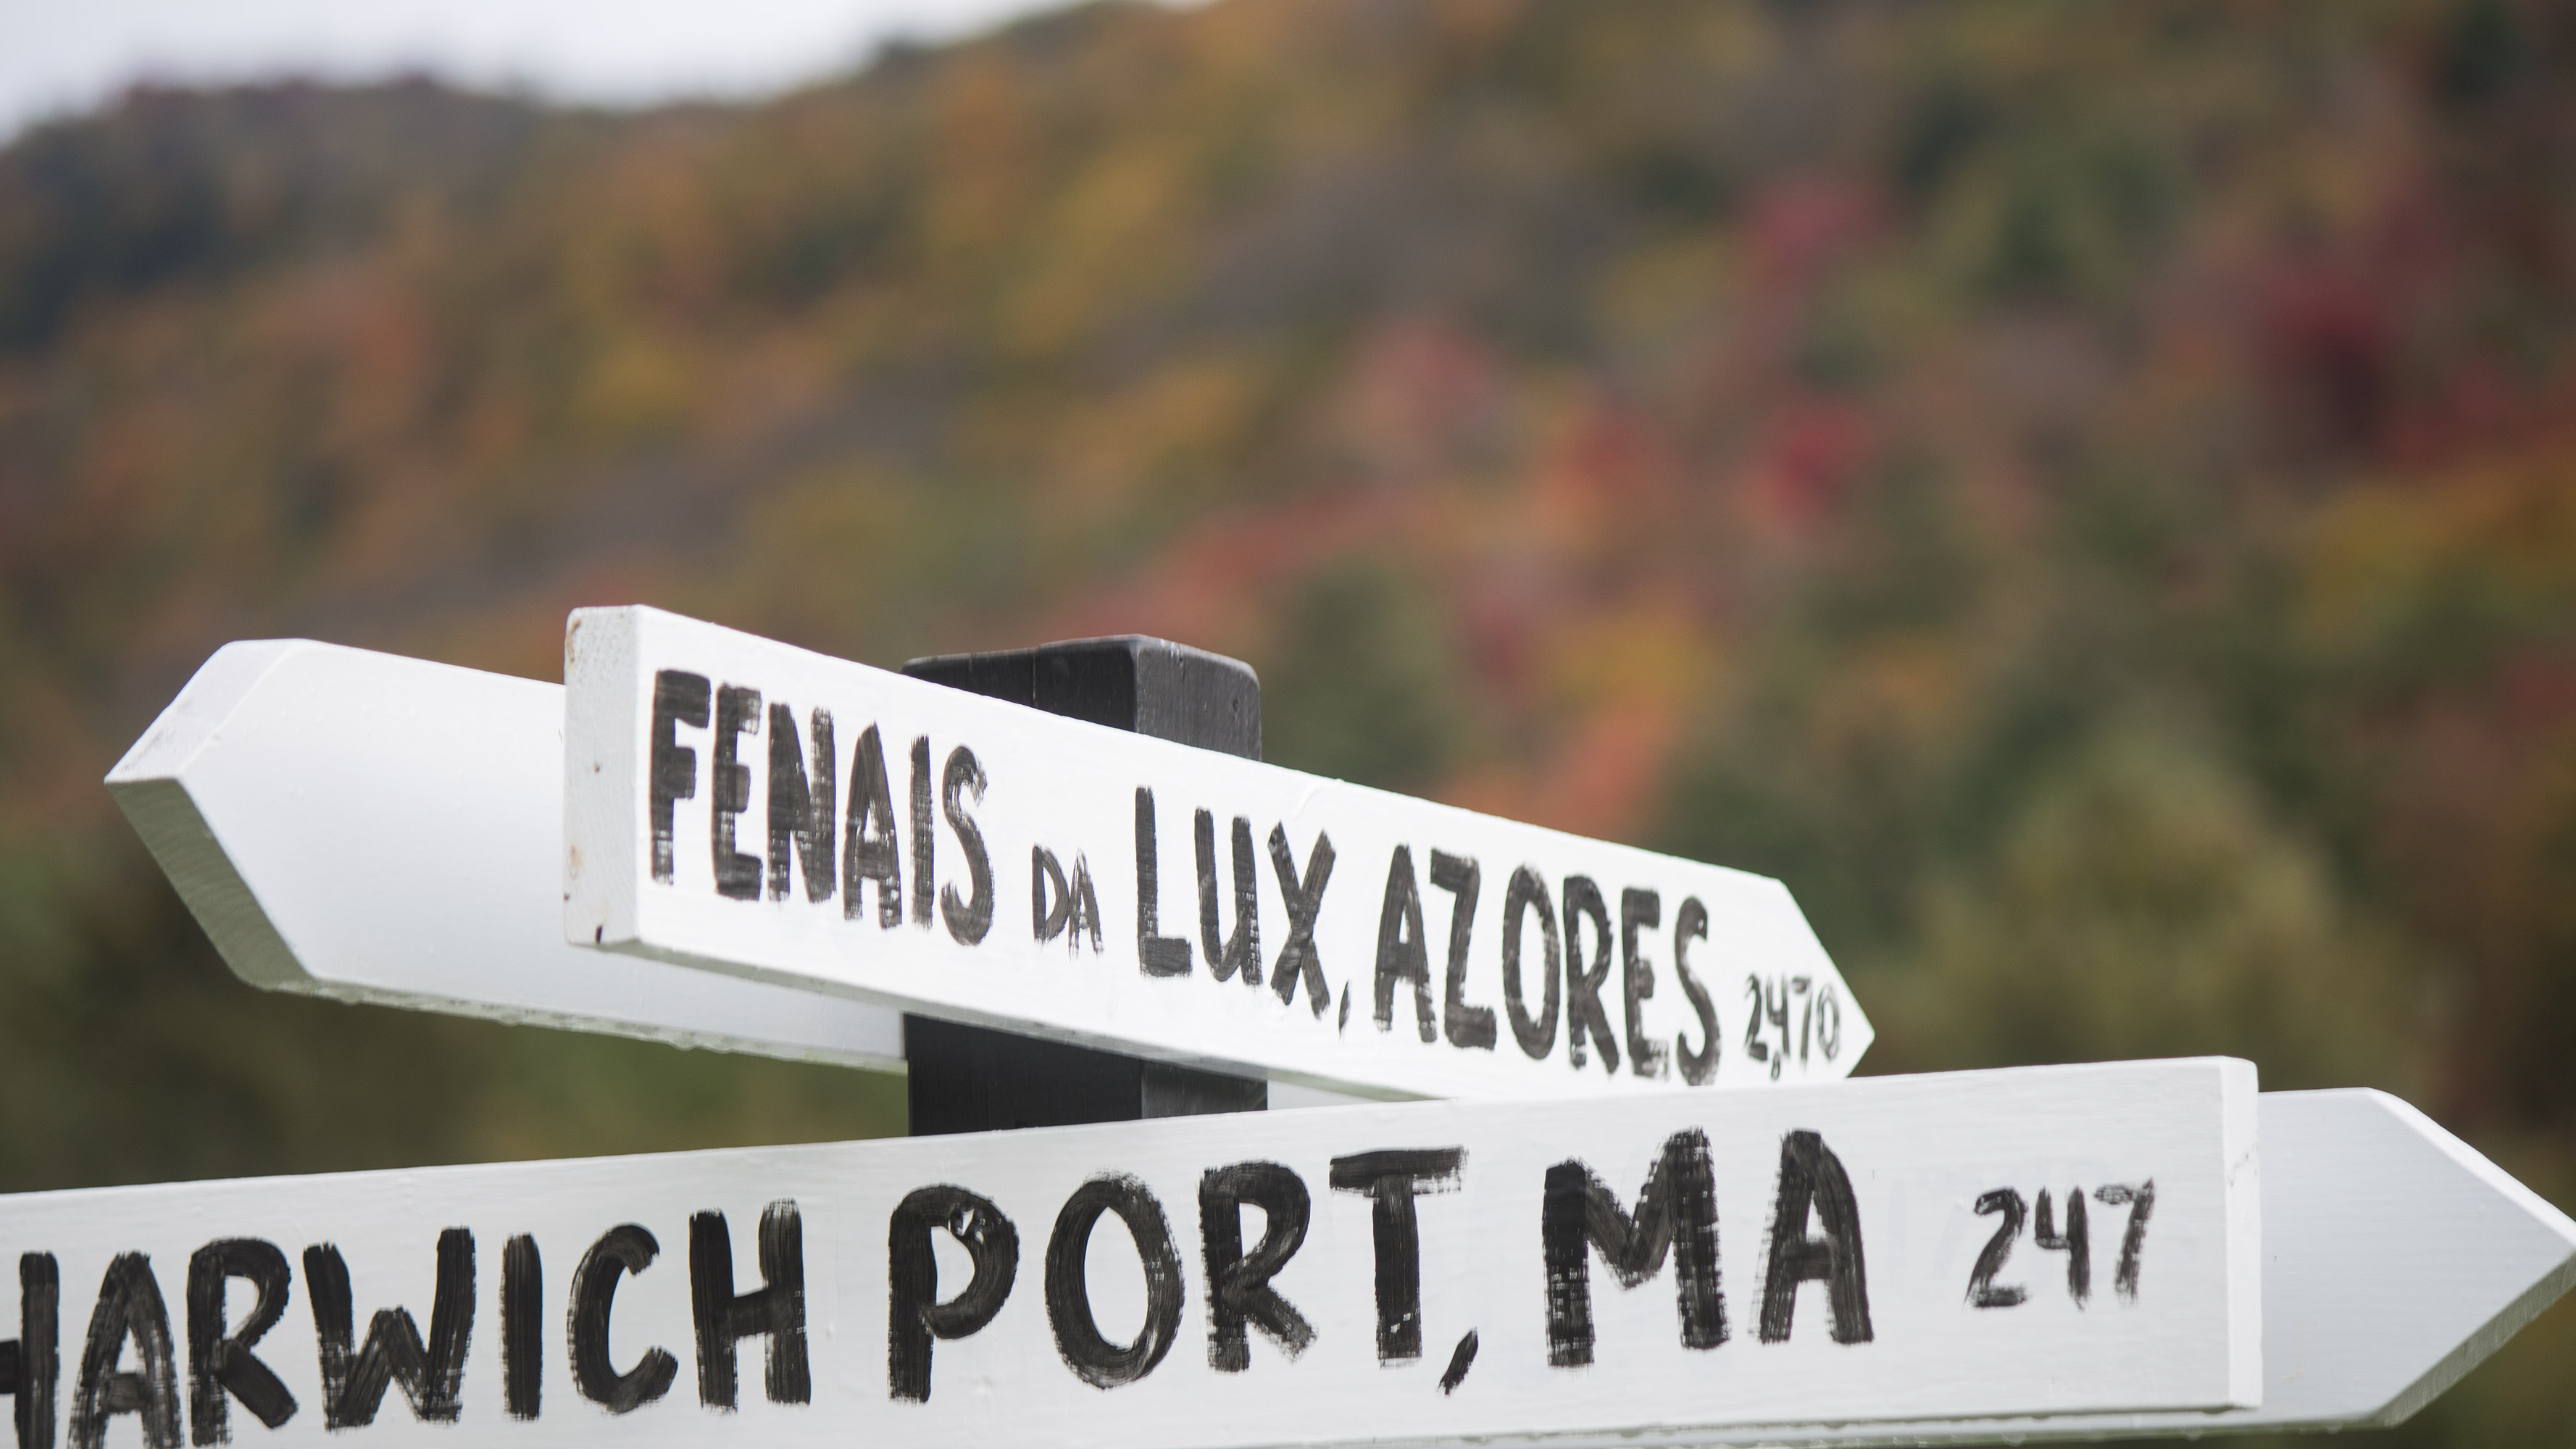 Vermont wedding venue signs with fall colors